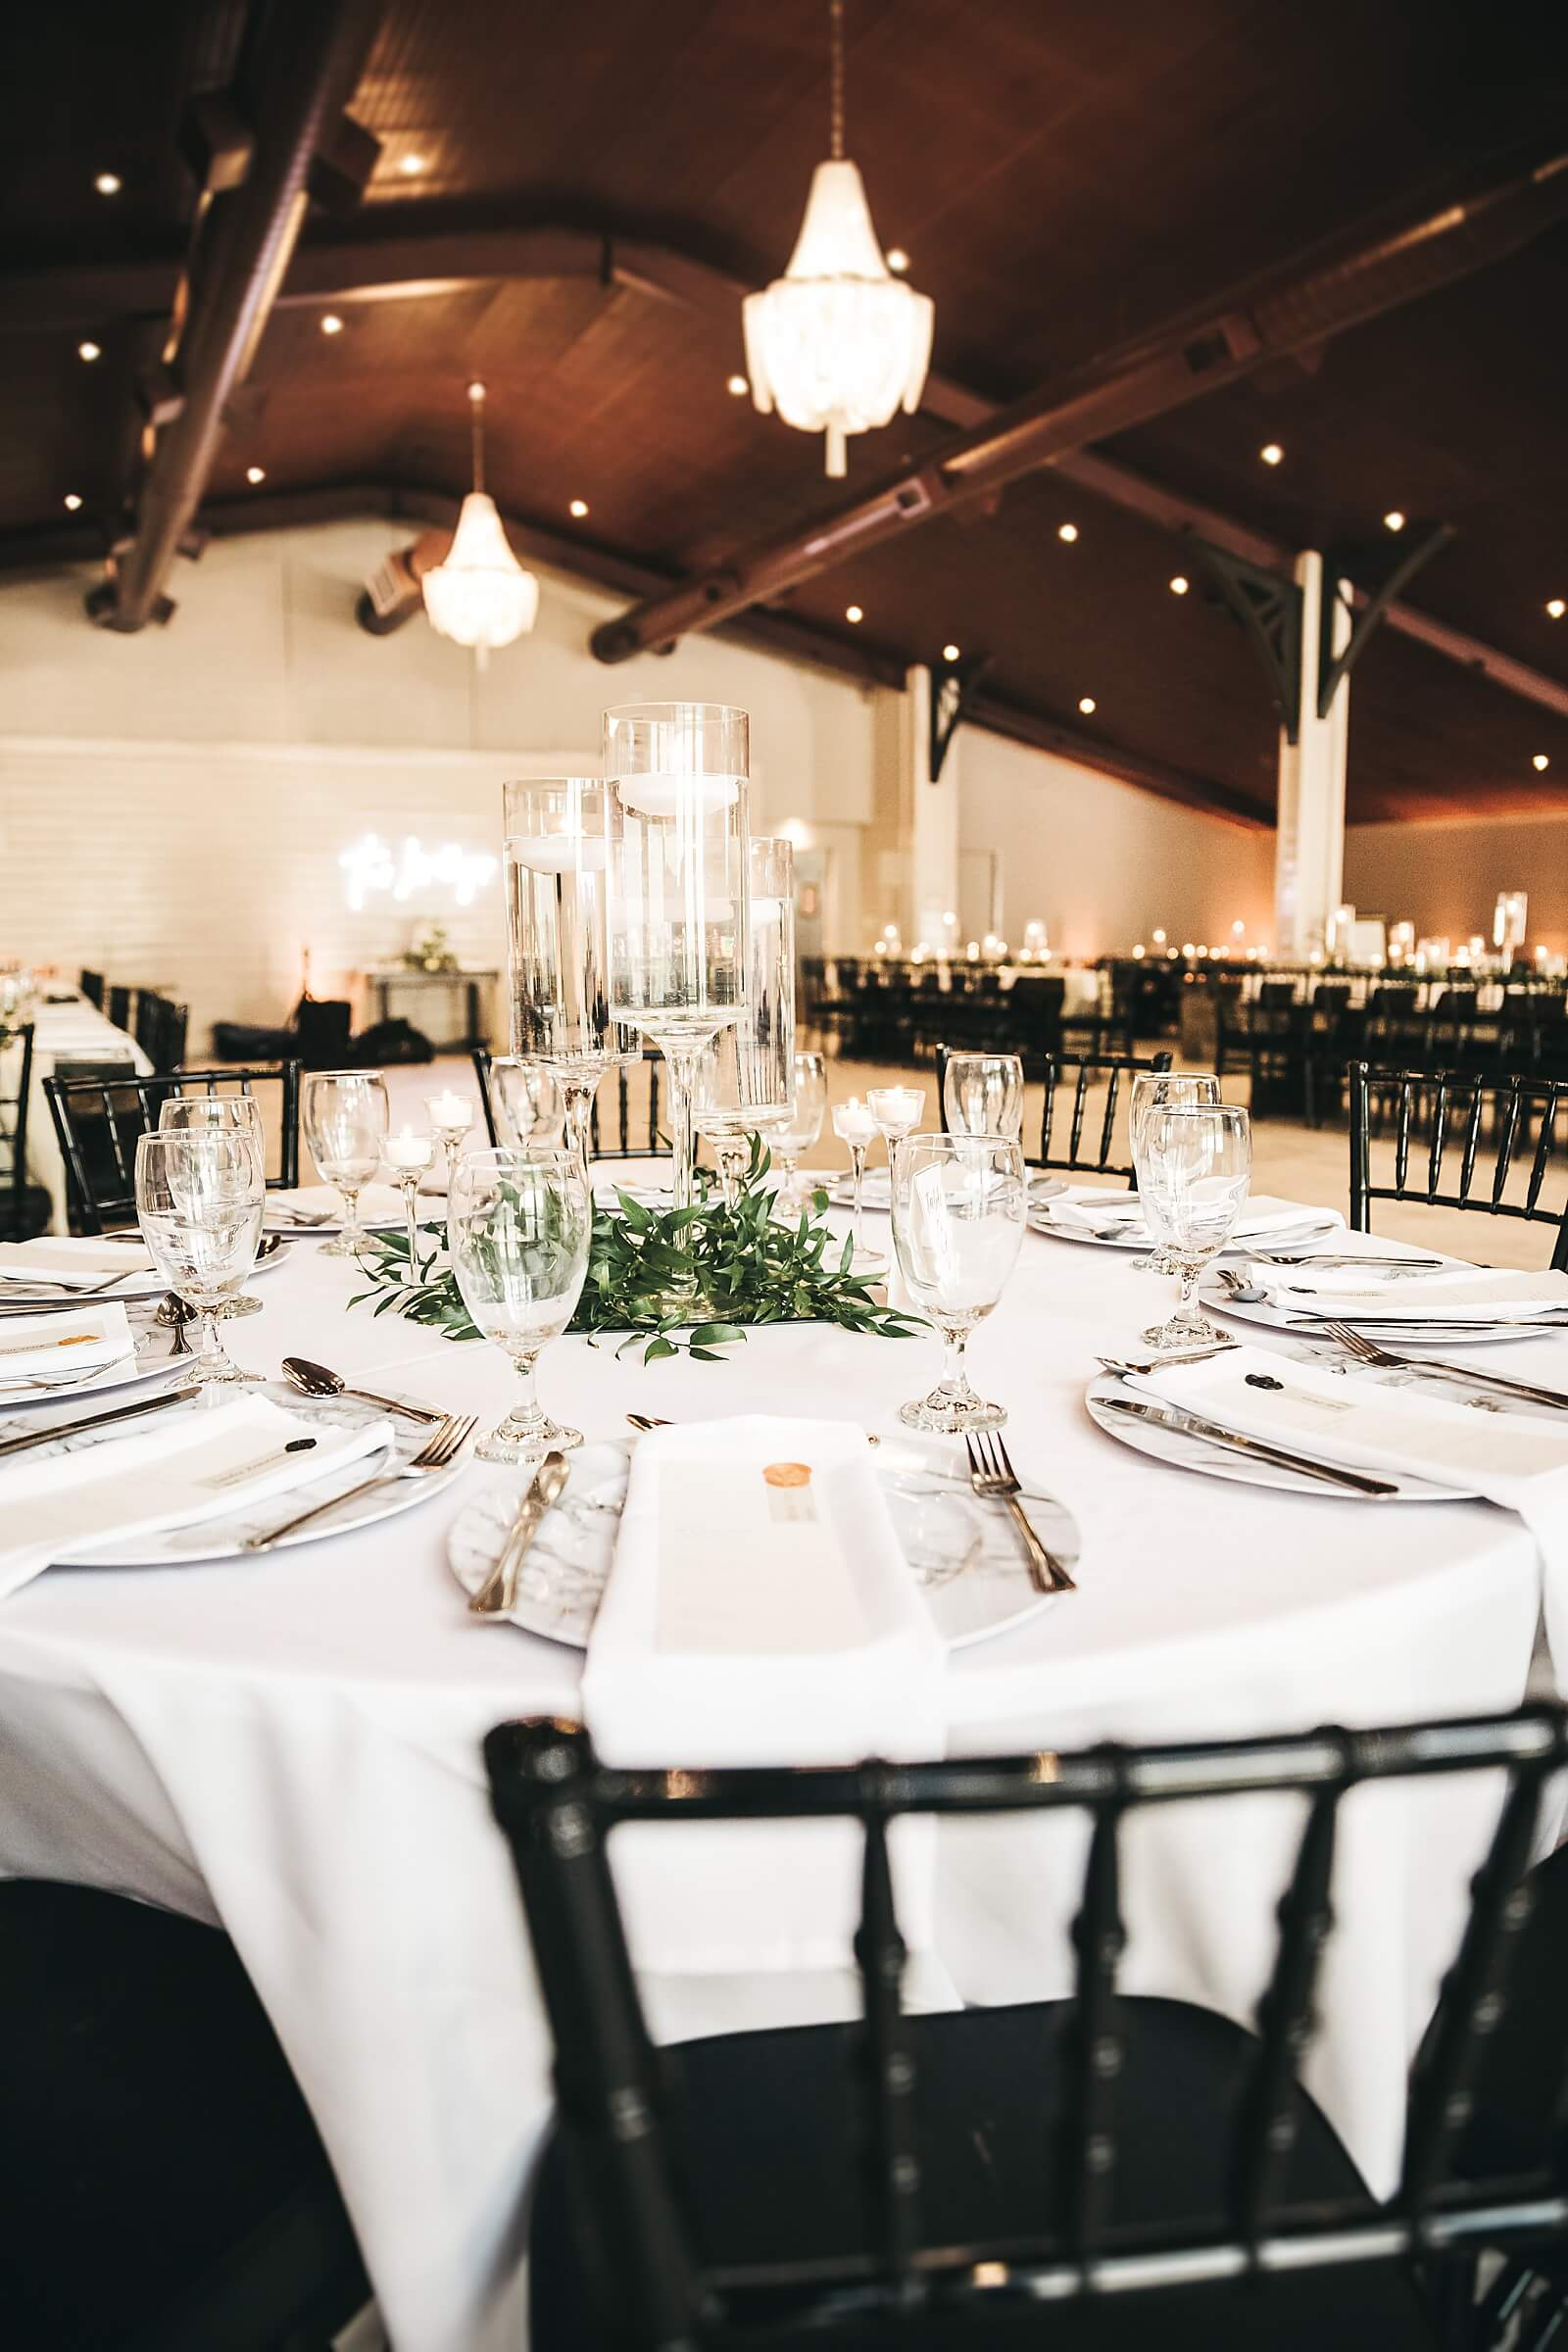 Elegant wedding table arrangements at one of the unique wedding venues in Houston The Annex